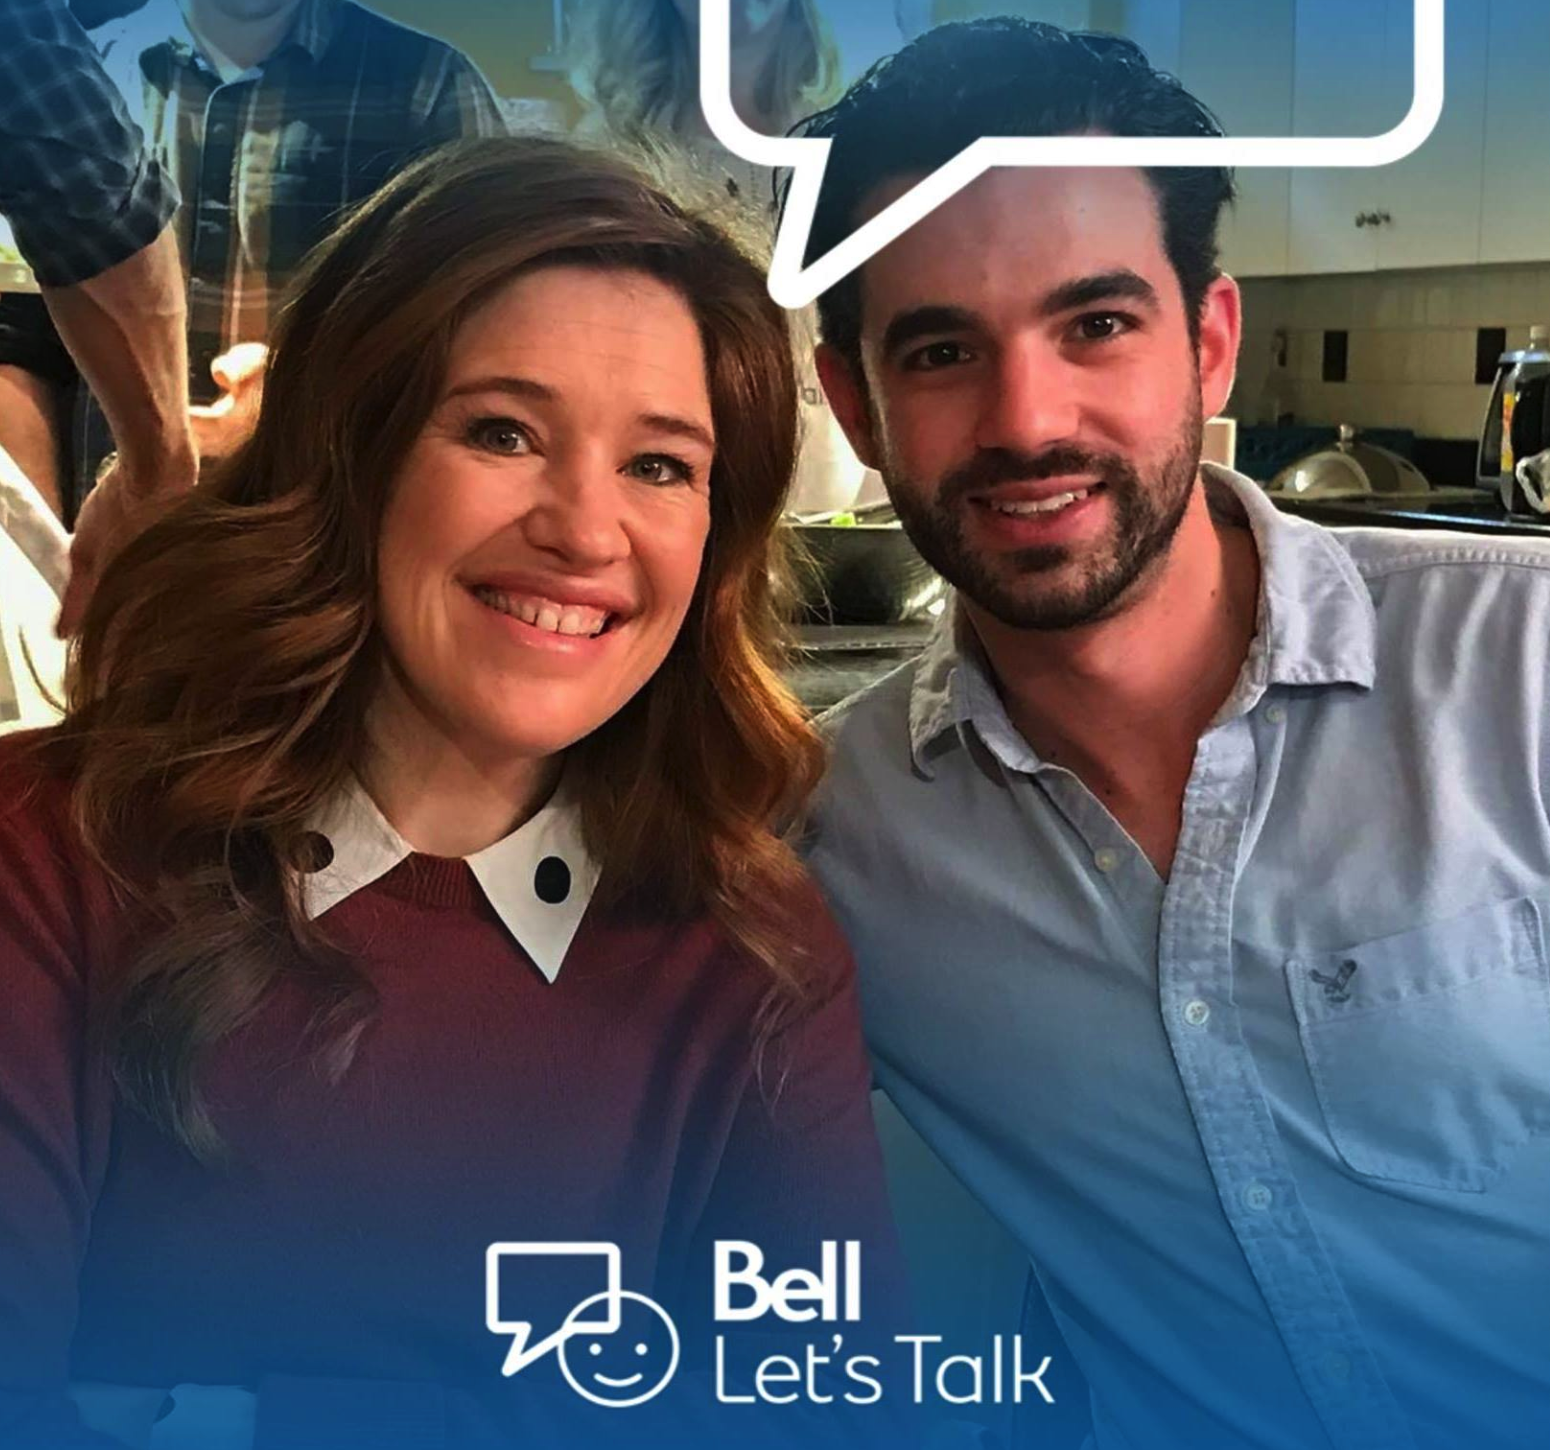 Joel Muise, Co-Founder of  Tranquility Online  w/ Clara Hughes national spokesperson for Bell Let's Talk.